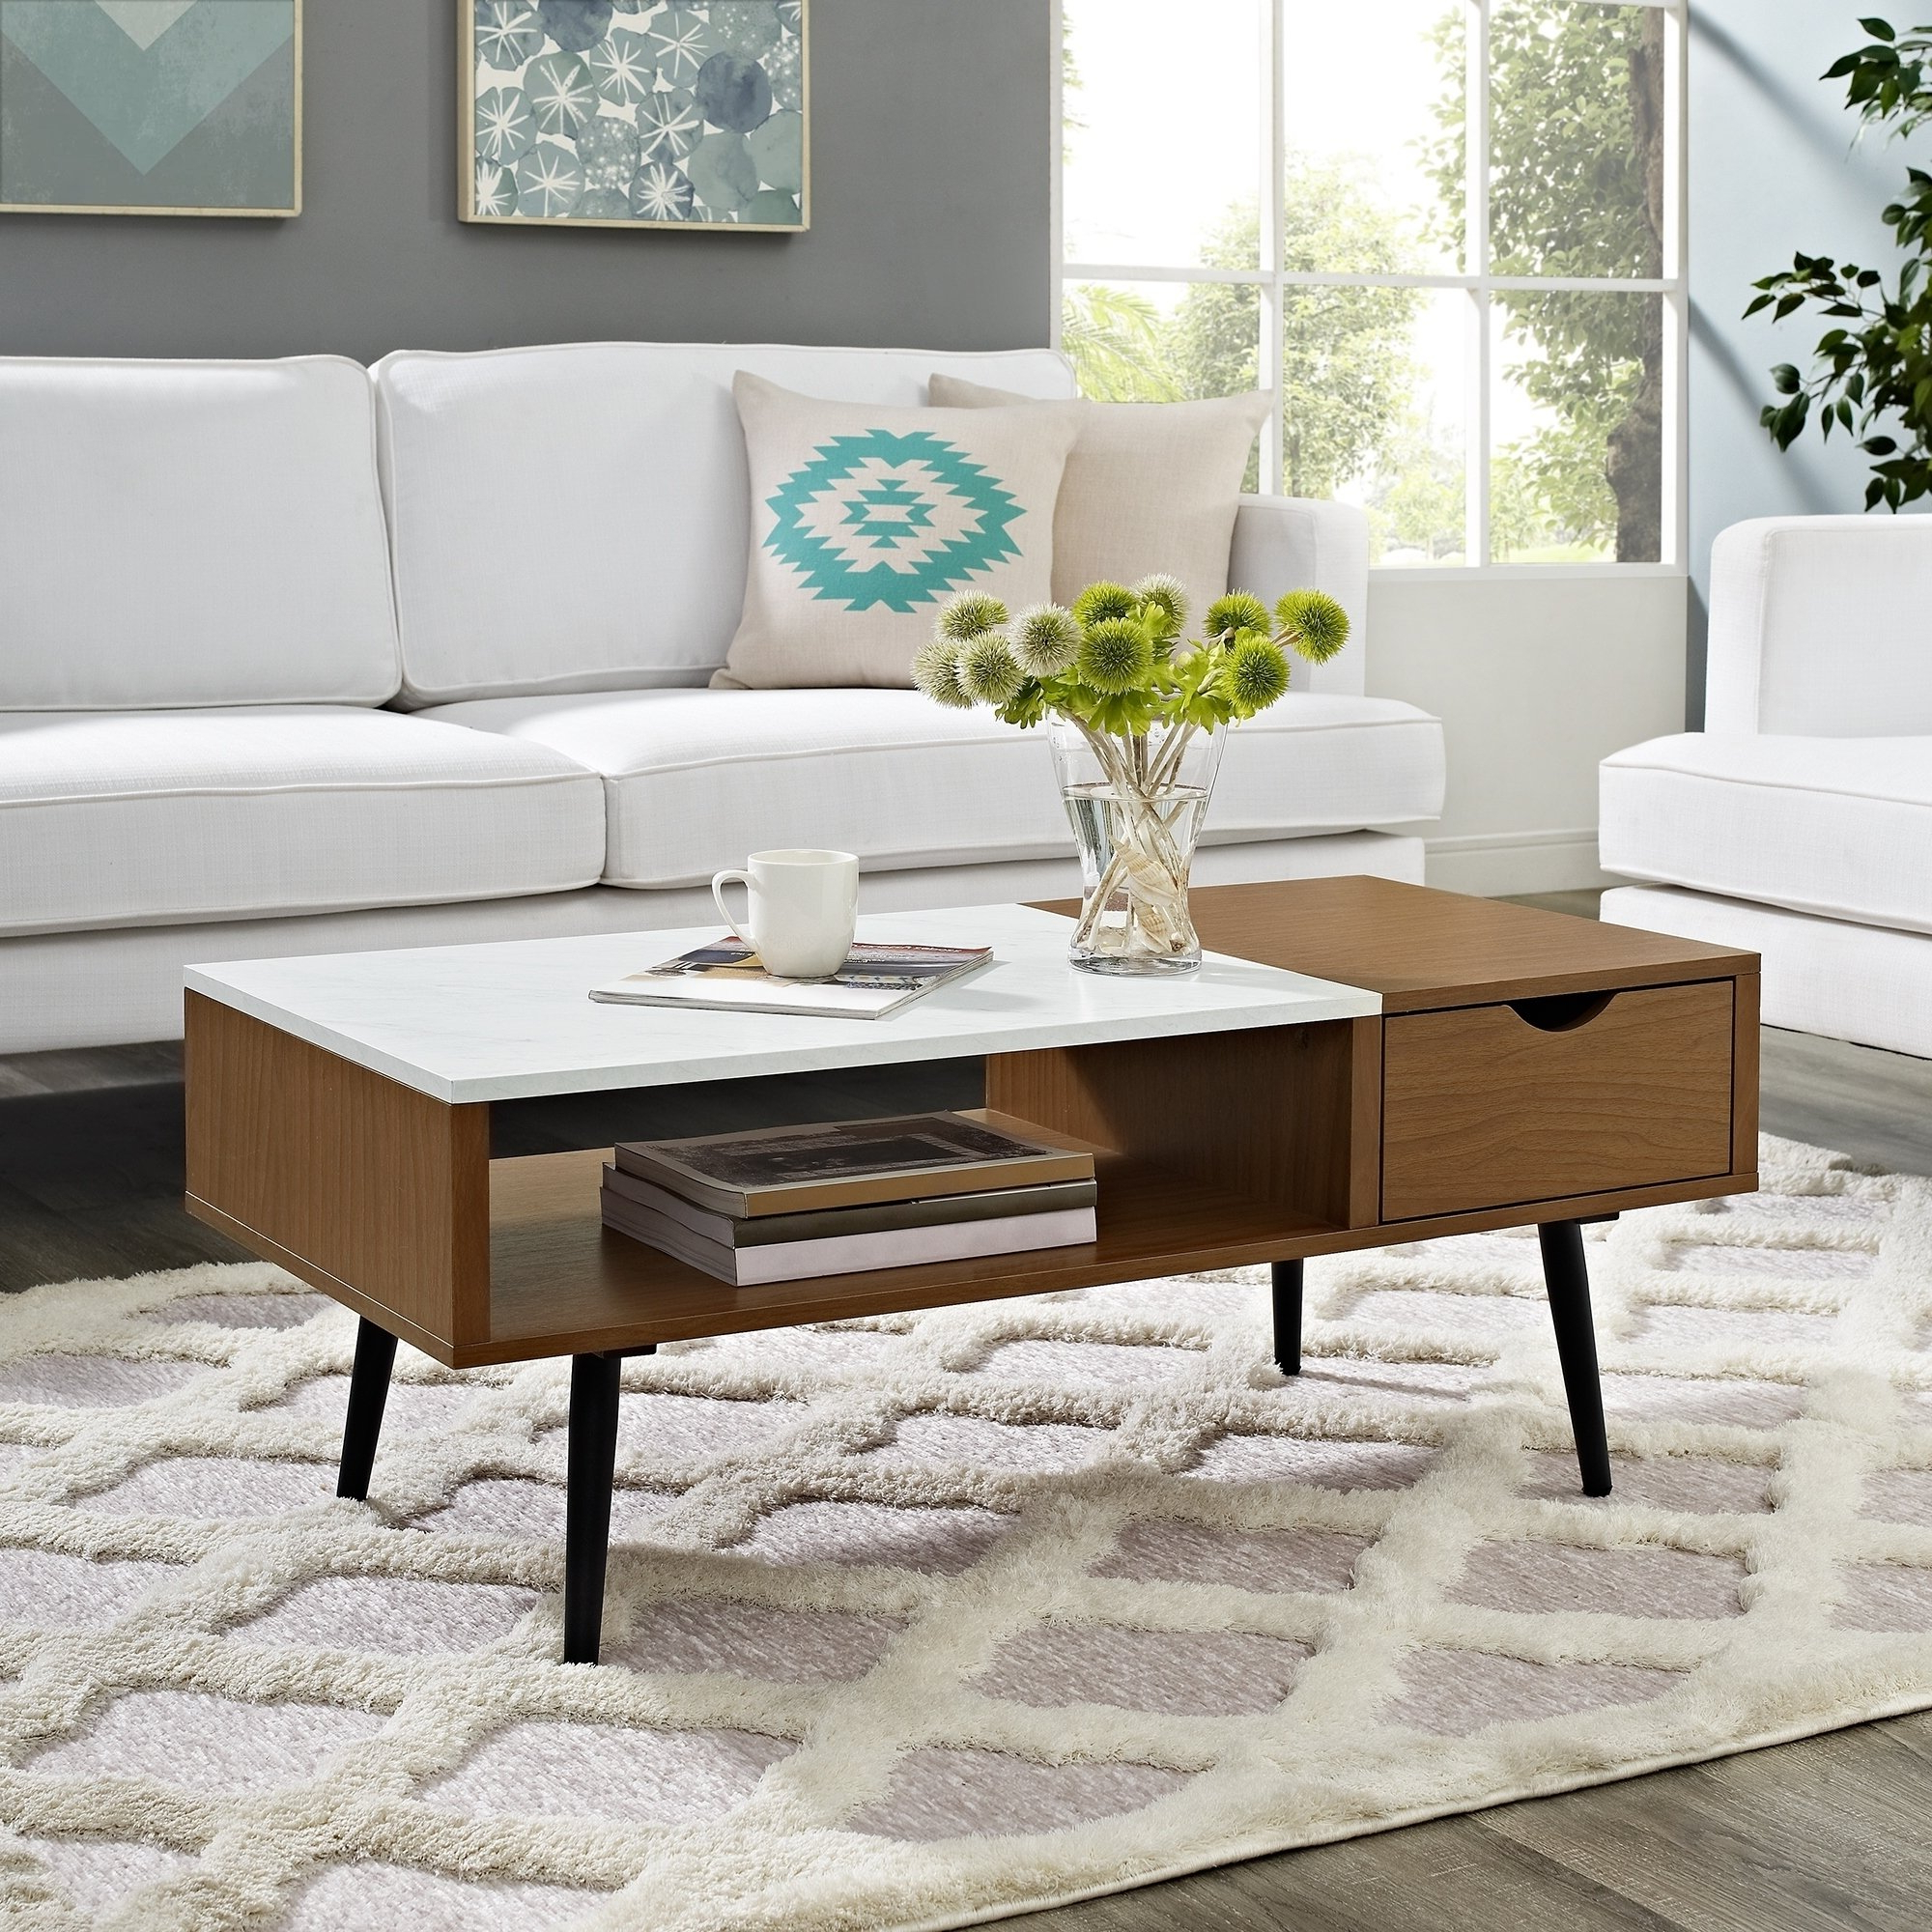 Newest Shop Mid Century Modern 42 Inch Wood And Faux Marble Coffee Table Throughout Mid Century Modern Marble Coffee Tables (View 13 of 20)